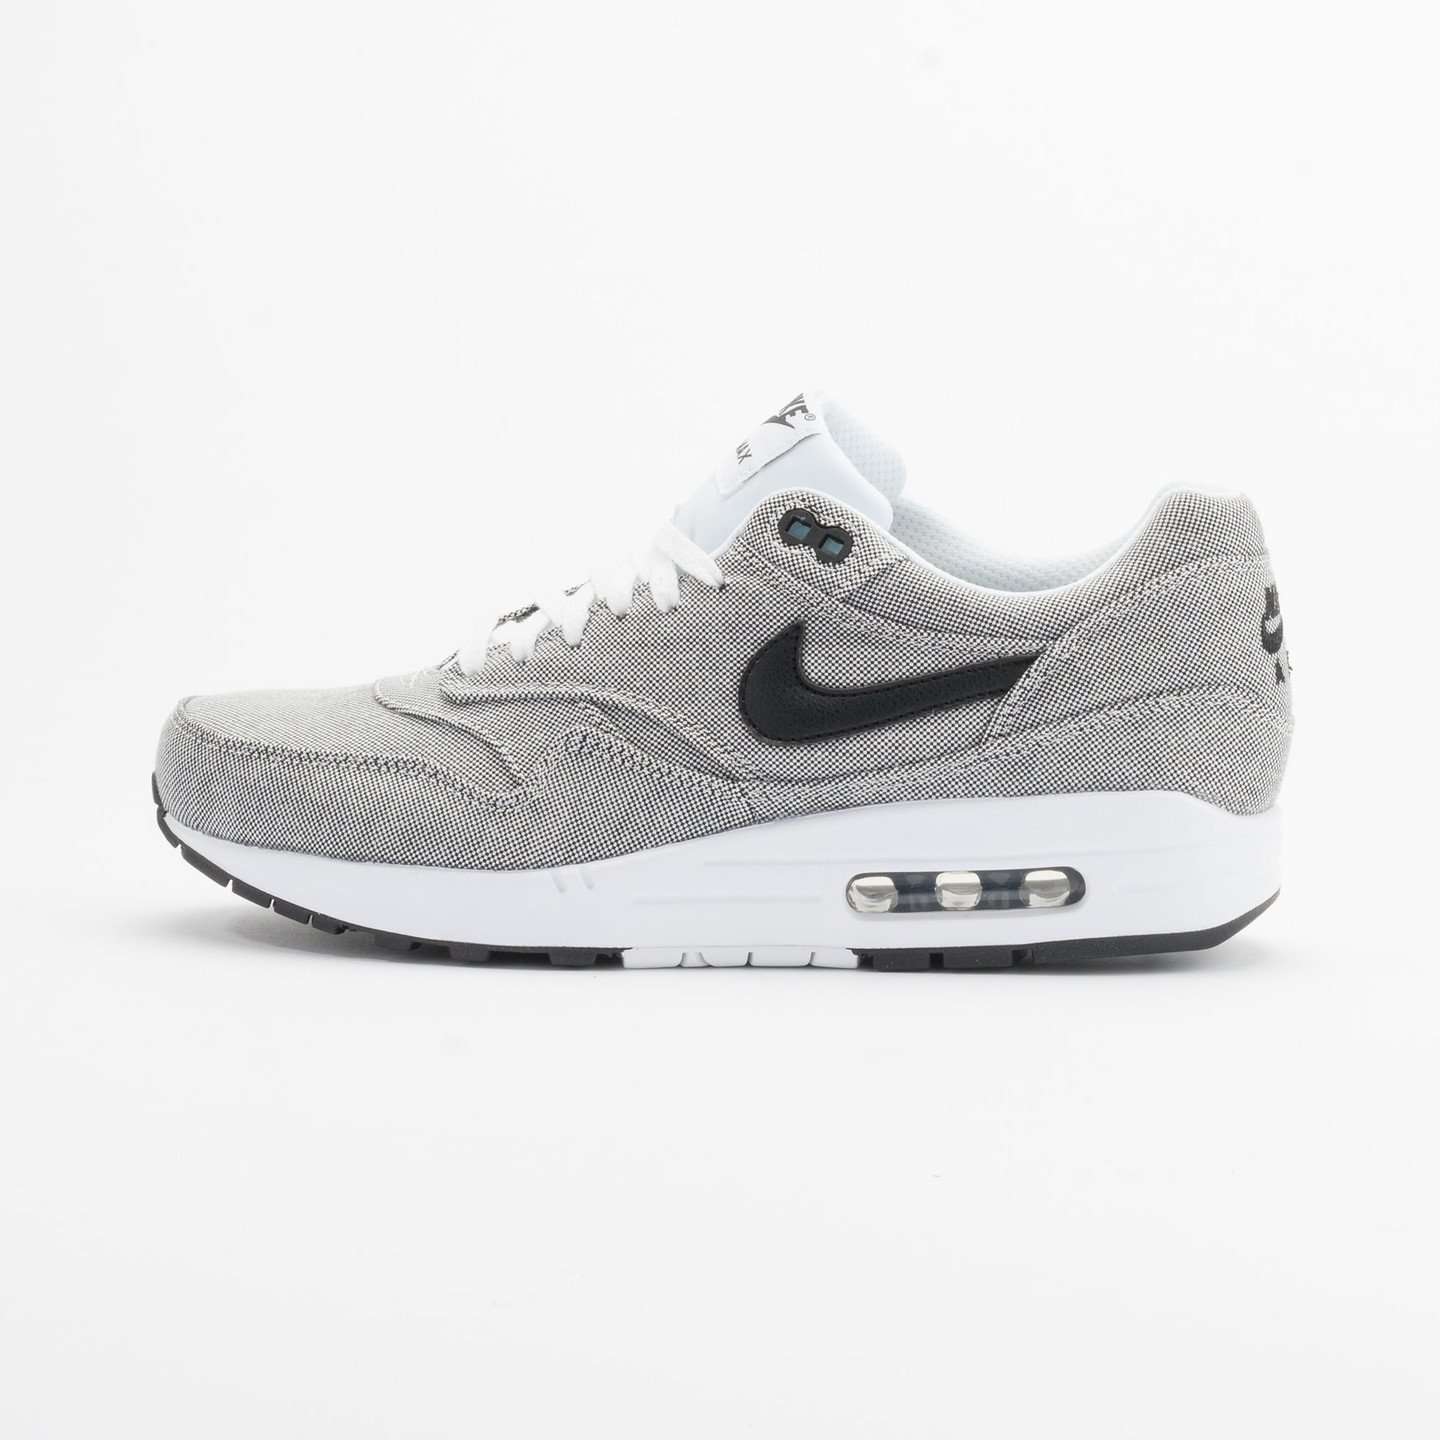 Nike Air Max 1 Prm Picknick Pack Black/White 512033-103-38.5